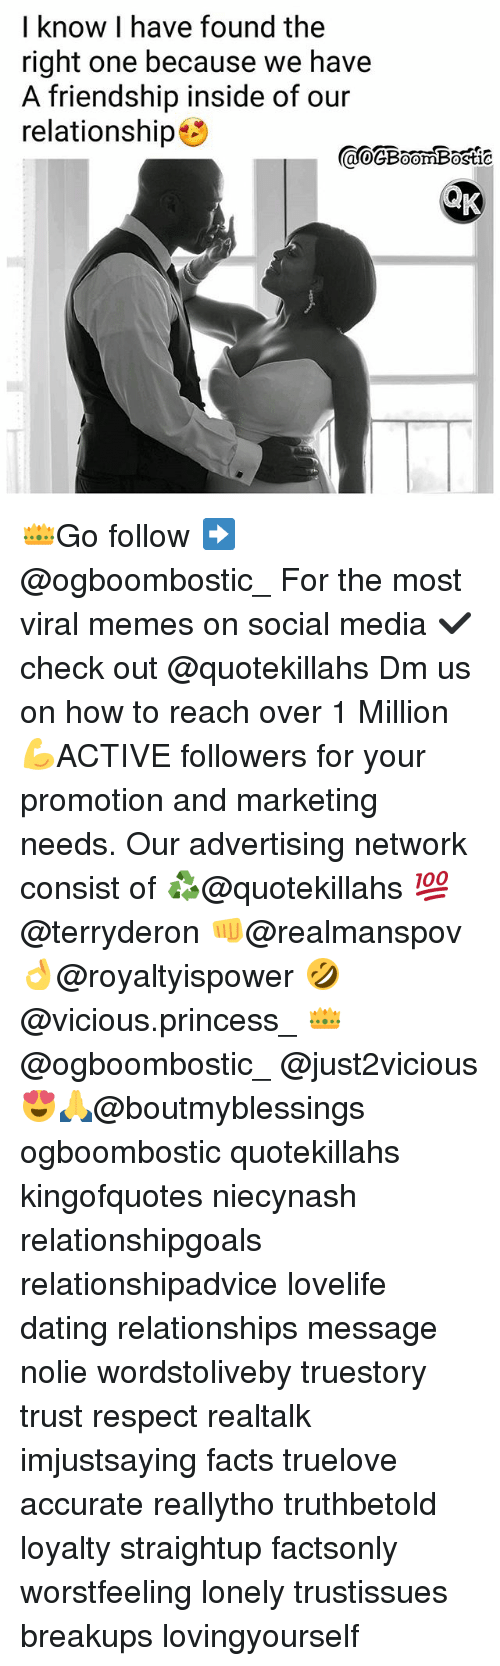 Dating, Facts, and Memes: I know I have found the  right one because we have  A friendship inside of our  relationship  ao@BoomBostic  0 👑Go follow ➡@ogboombostic_ For the most viral memes on social media ✔check out @quotekillahs Dm us on how to reach over 1 Million💪ACTIVE followers for your promotion and marketing needs. Our advertising network consist of ♻@quotekillahs 💯@terryderon 👊@realmanspov 👌@royaltyispower 🤣@vicious.princess_ 👑@ogboombostic_ @just2vicious😍🙏@boutmyblessings ogboombostic quotekillahs kingofquotes niecynash relationshipgoals relationshipadvice lovelife dating relationships message nolie wordstoliveby truestory trust respect realtalk imjustsaying facts truelove accurate reallytho truthbetold loyalty straightup factsonly worstfeeling lonely trustissues breakups lovingyourself